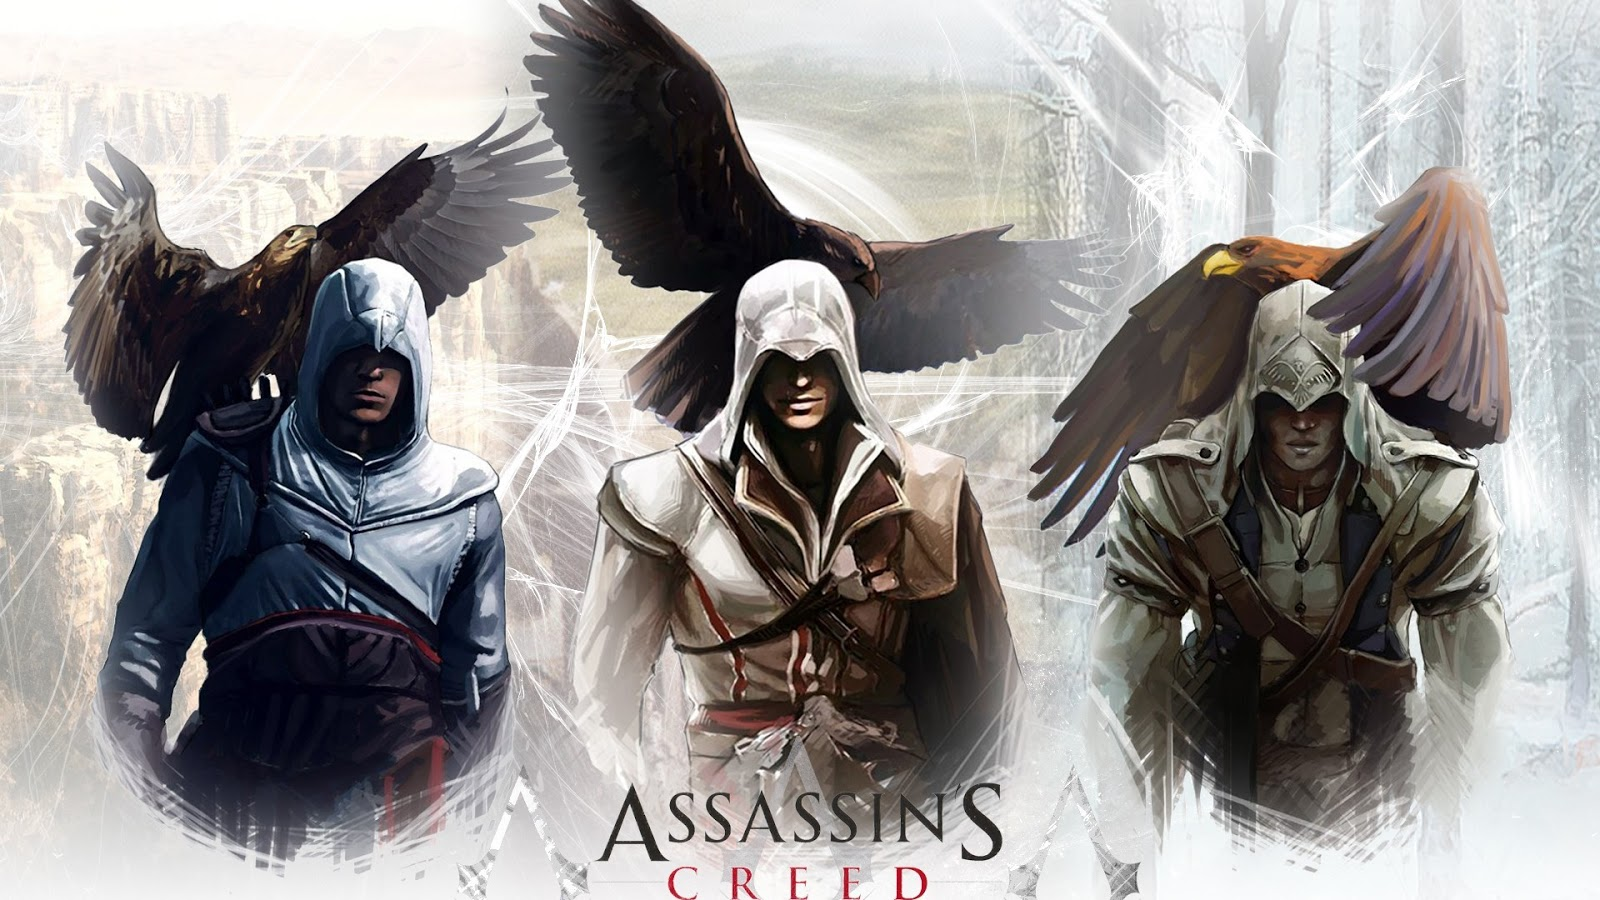 Assassins Creed Art Hd Wallpaper Covers Heat